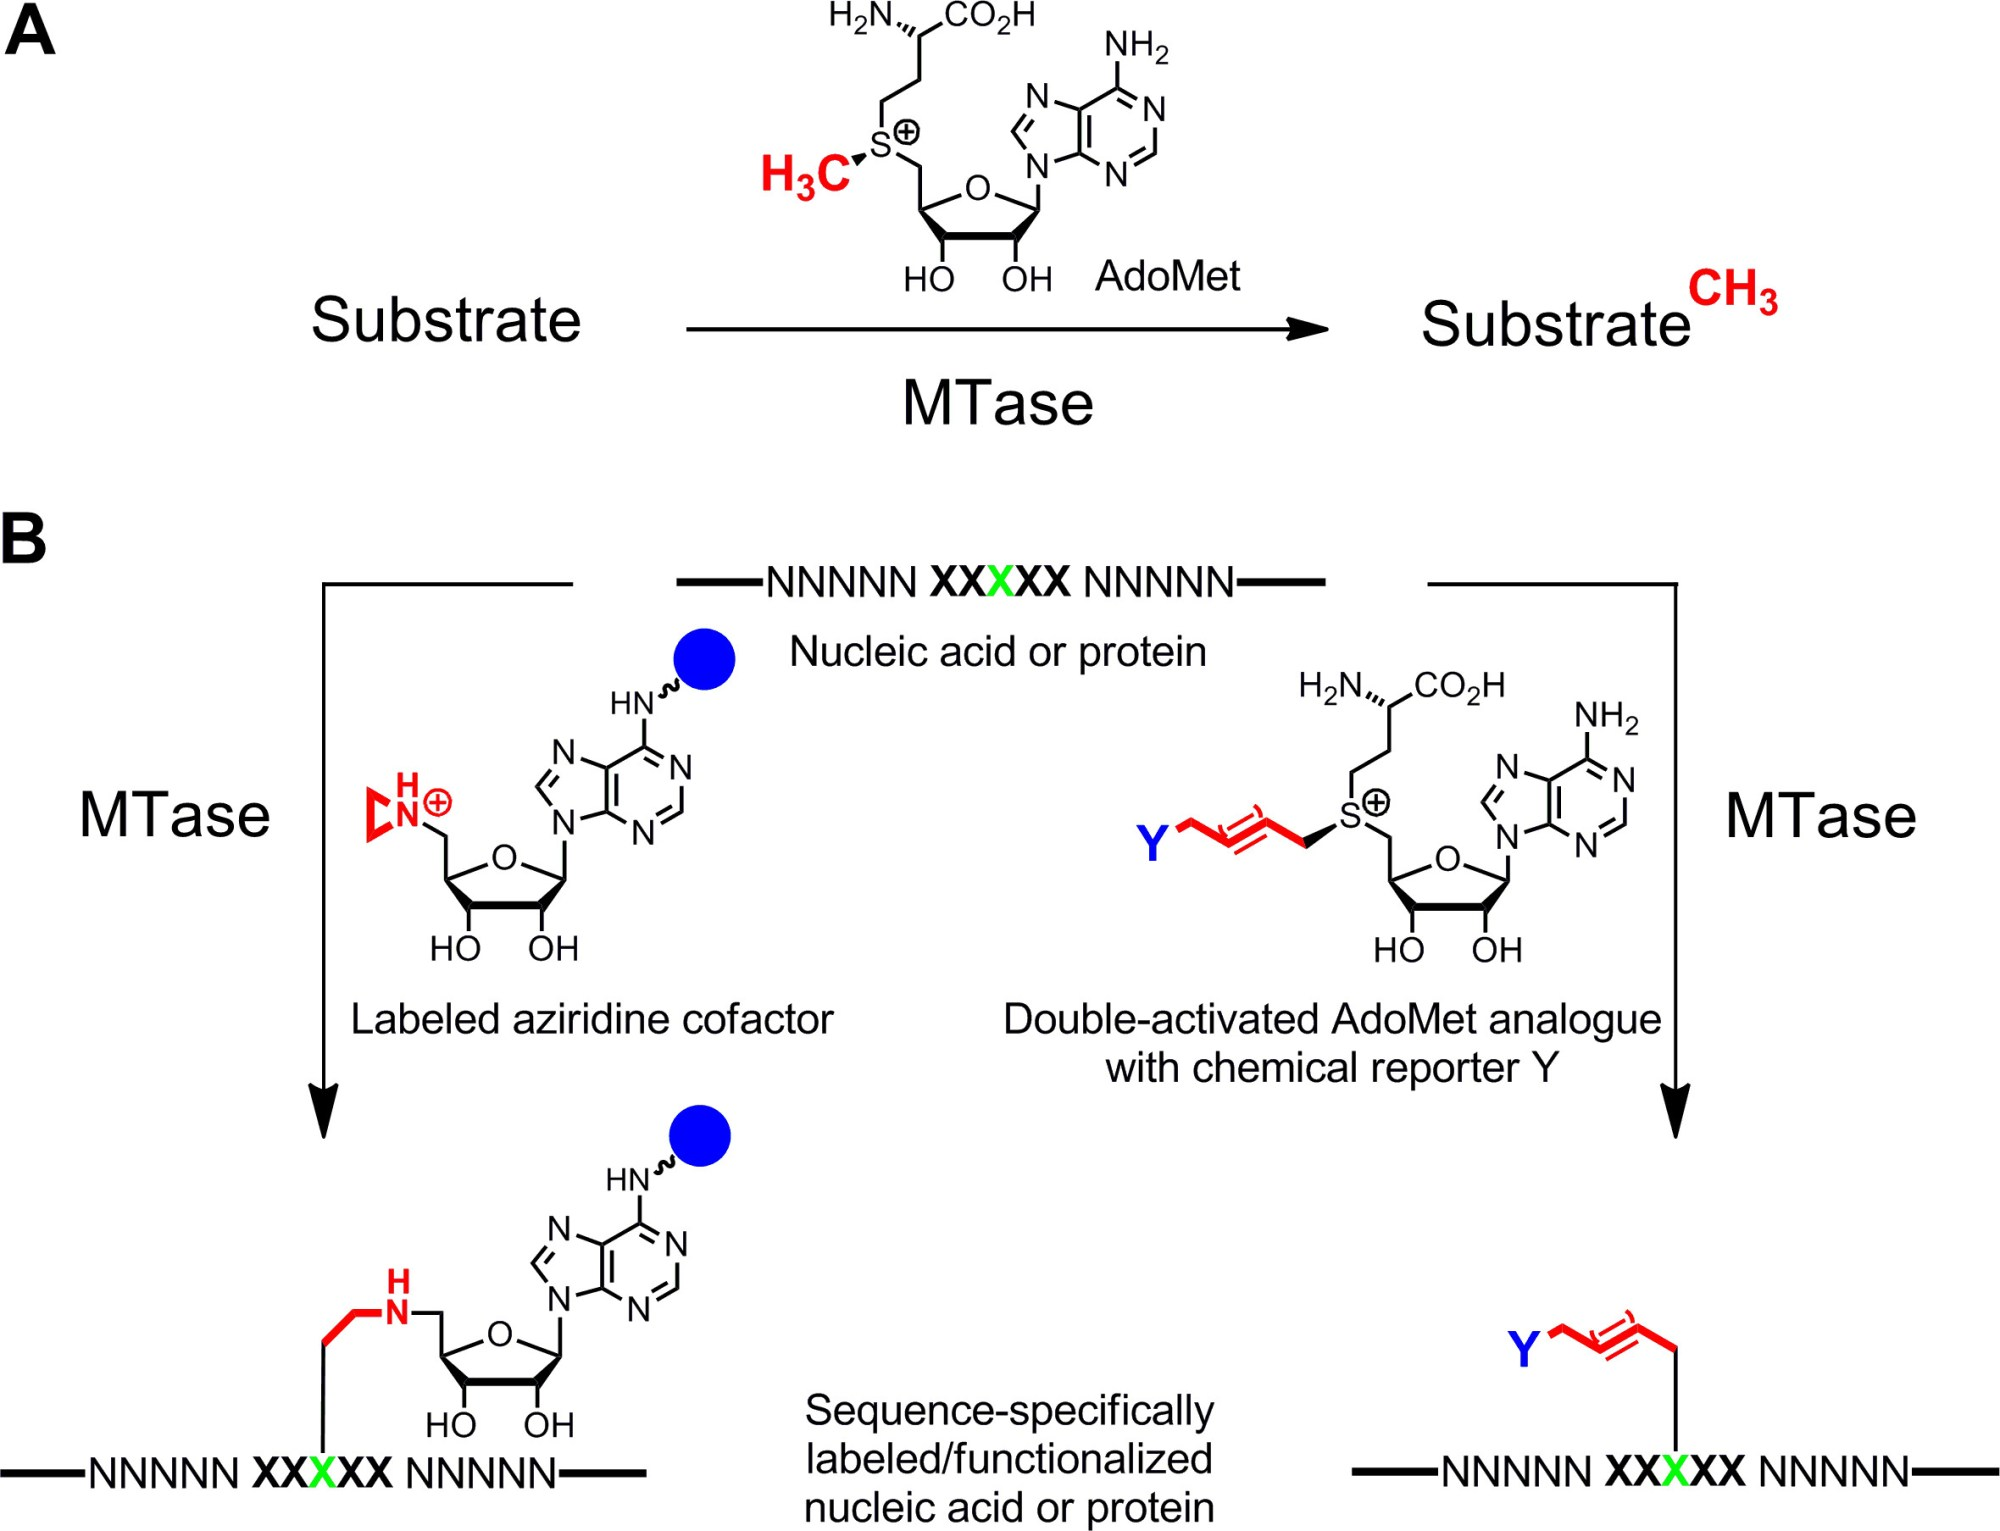 hight resolution of a methyl group transfer from the natural cofactor adomet sam to various substrates including dna rna proteins and small biomolecules